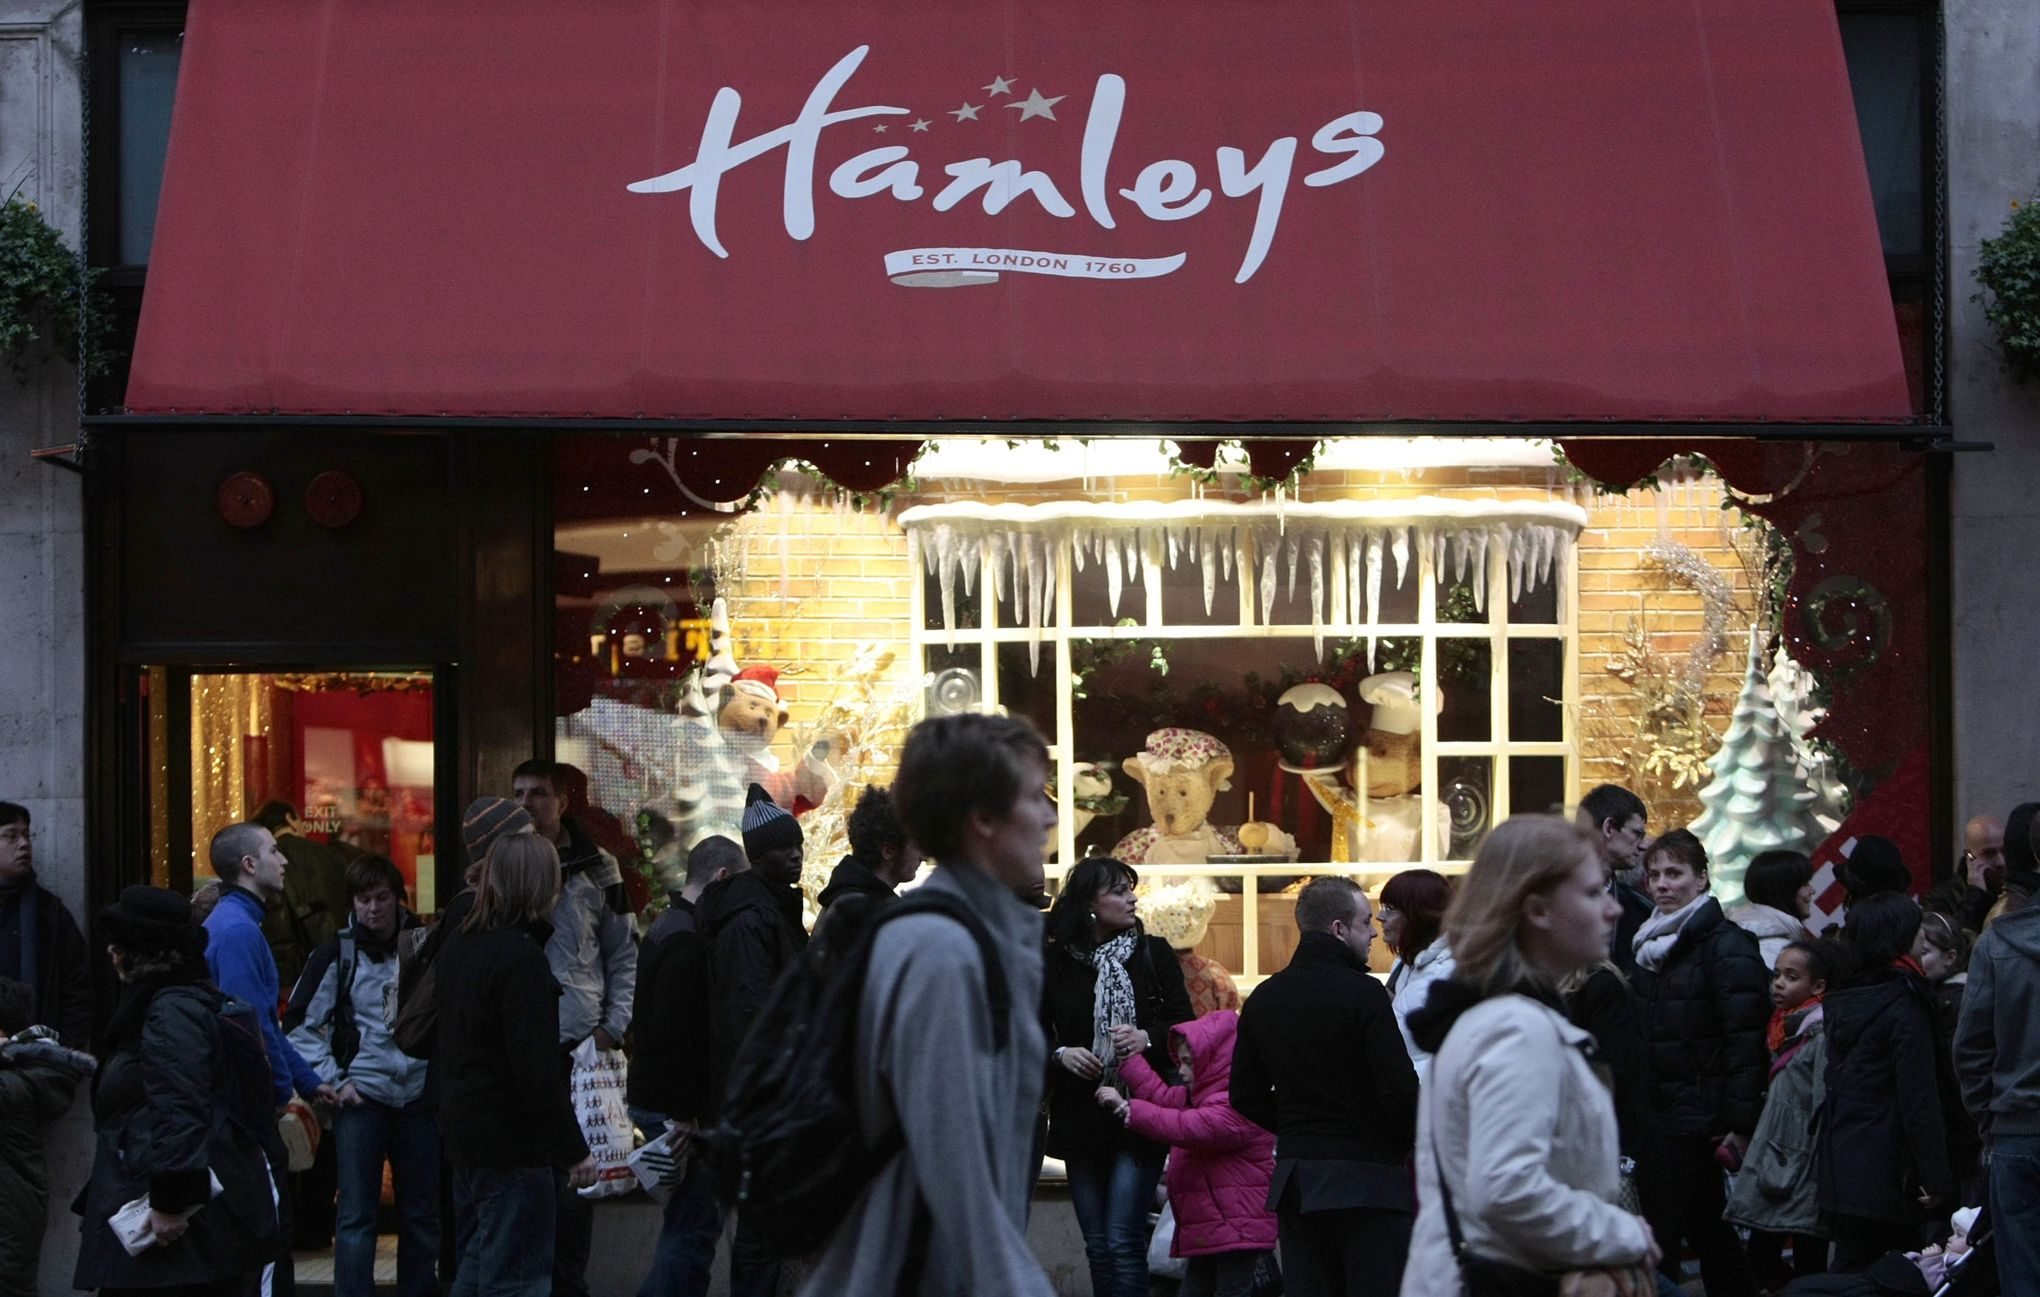 Hamleys ouvre le plus grand magasin de jouets d 39 europe moscou - Grand magasin de jouet londres ...